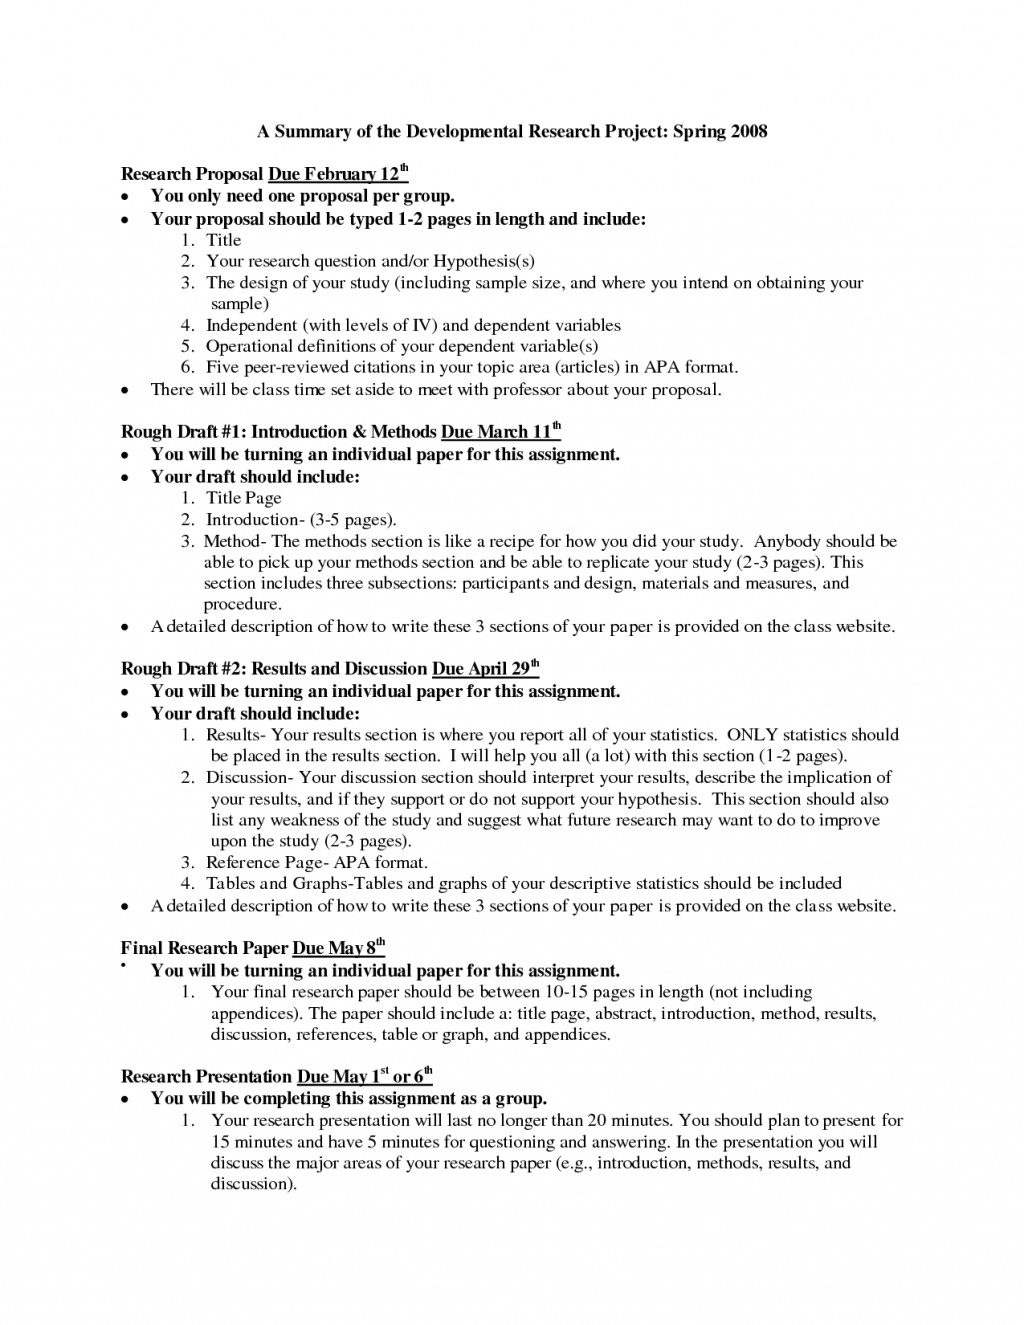 012 Good Research Paper Topic Psychology Undergraduate Resume Unique Sample Singular Topics History Reddit Argumentative About Sports Large